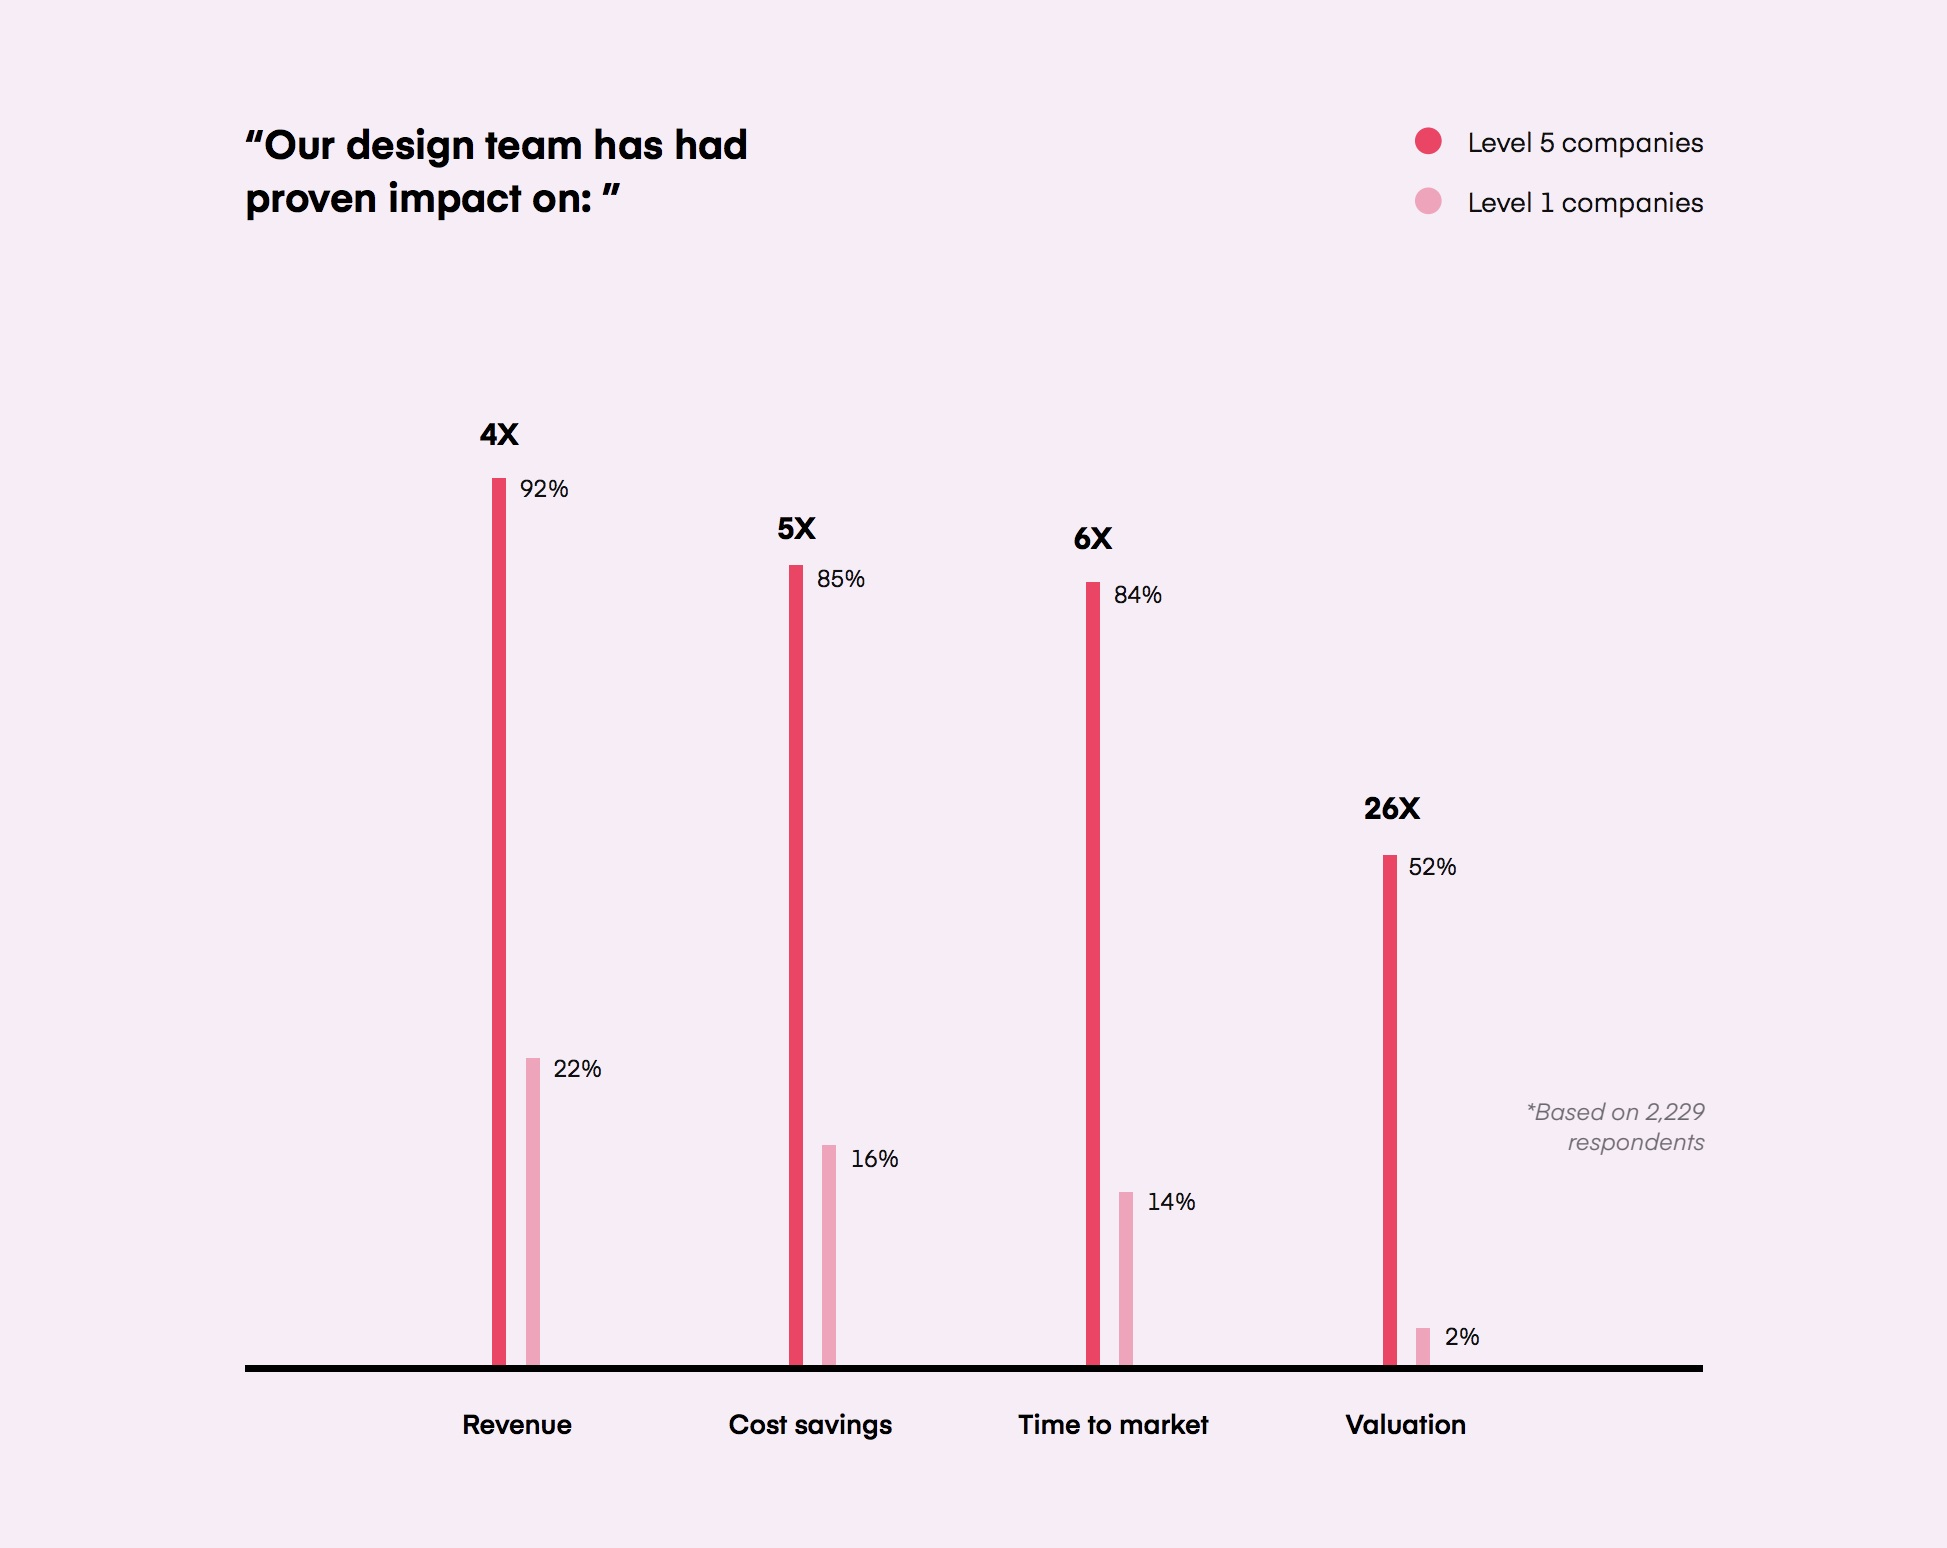 Level 5 companies are companies that involve design as an integrated part of the business from the bottom up, while Level 1 companies do not use design heavily. Source: Design Maturity Model, InDesign 2019